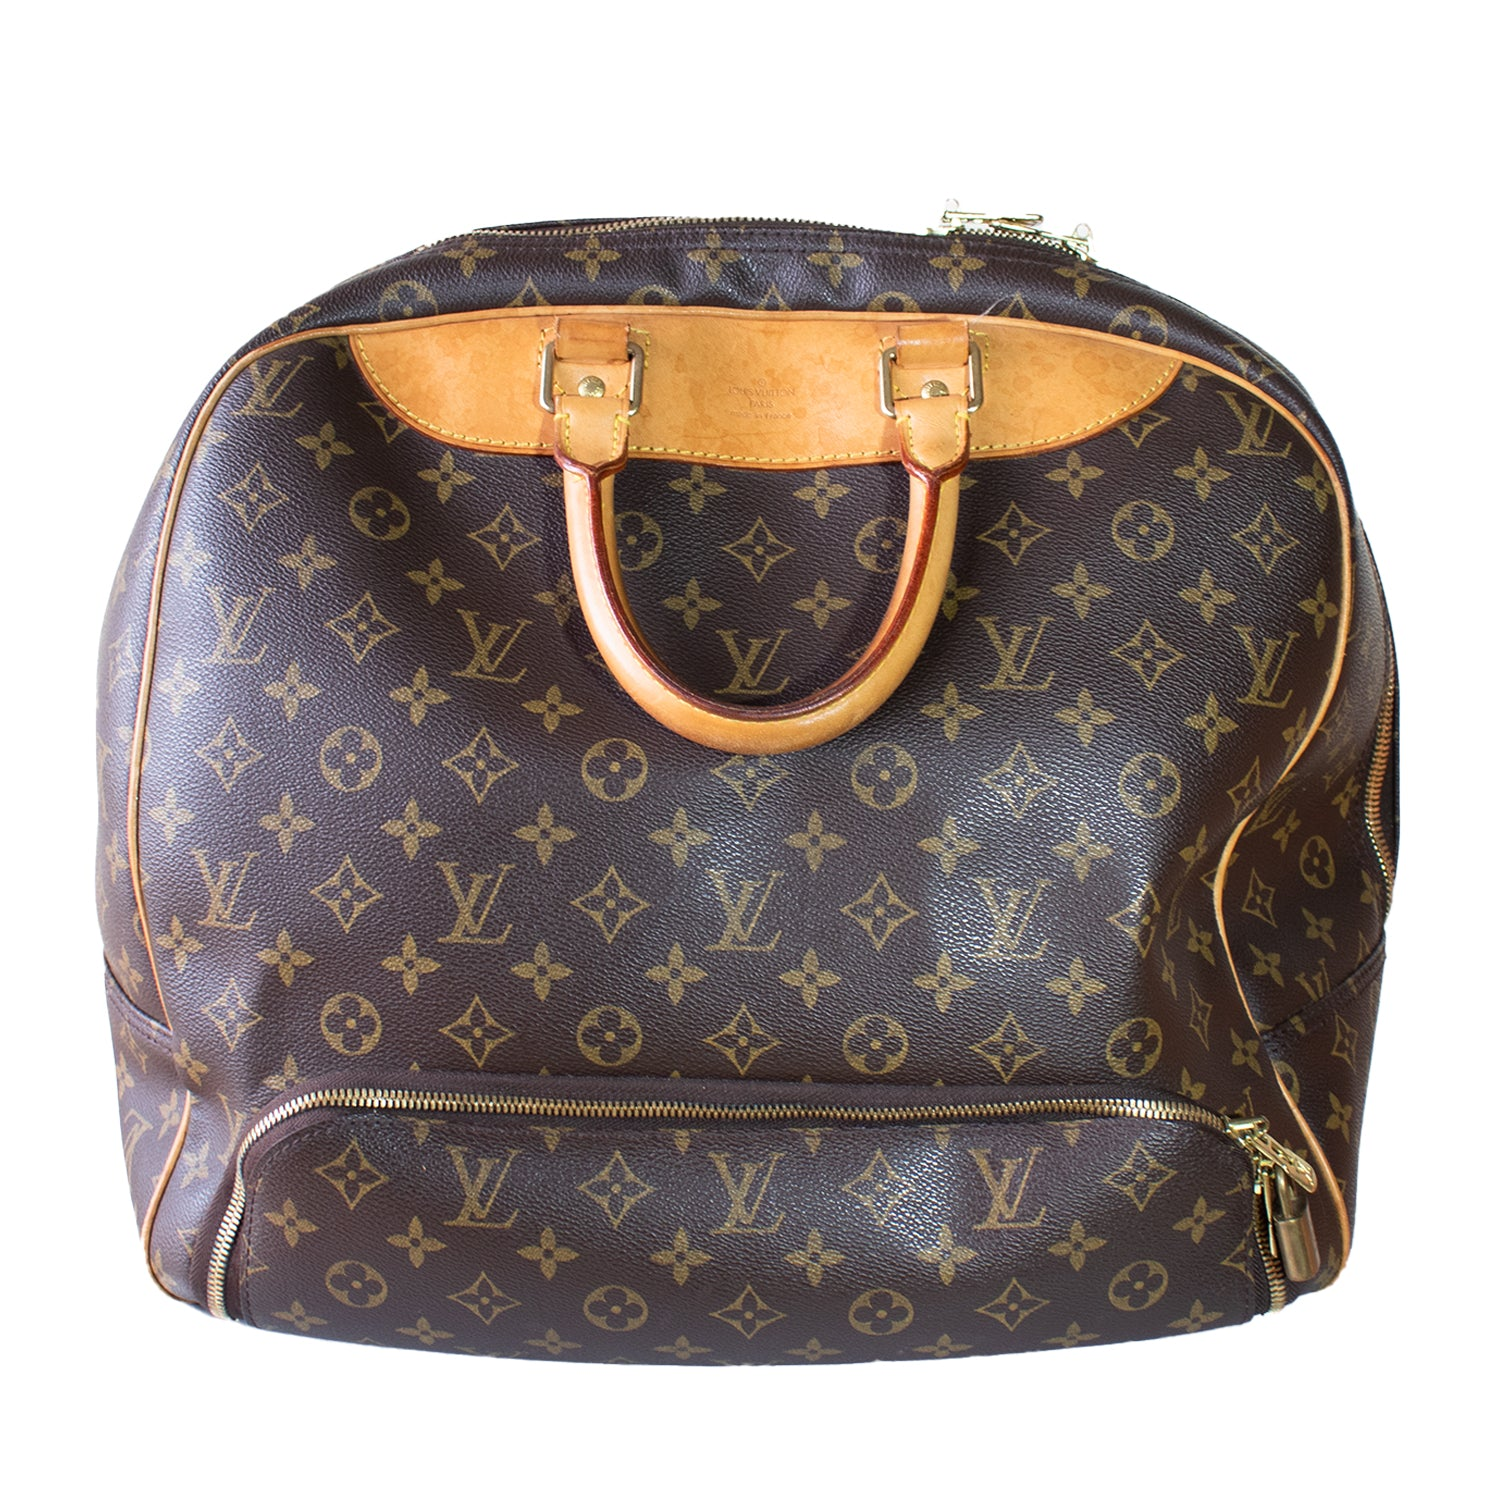 <transcy>Bolso Louis Vuitton</transcy>